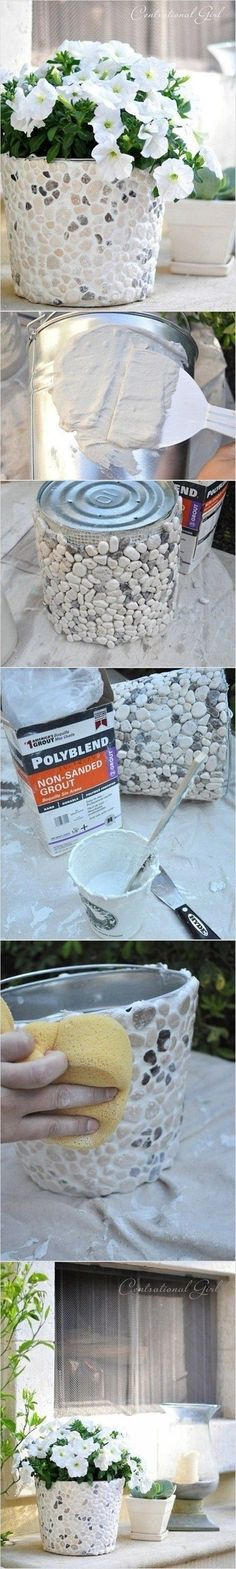 DIY Stone Pots from paint buckets DIY Macetero decorado con piedras Fun Crafts, Diy And Crafts, Creative Crafts, Outdoor Projects, Outdoor Decor, Garden Projects, Outdoor Living, Outdoor Crafts, Mosaic Projects